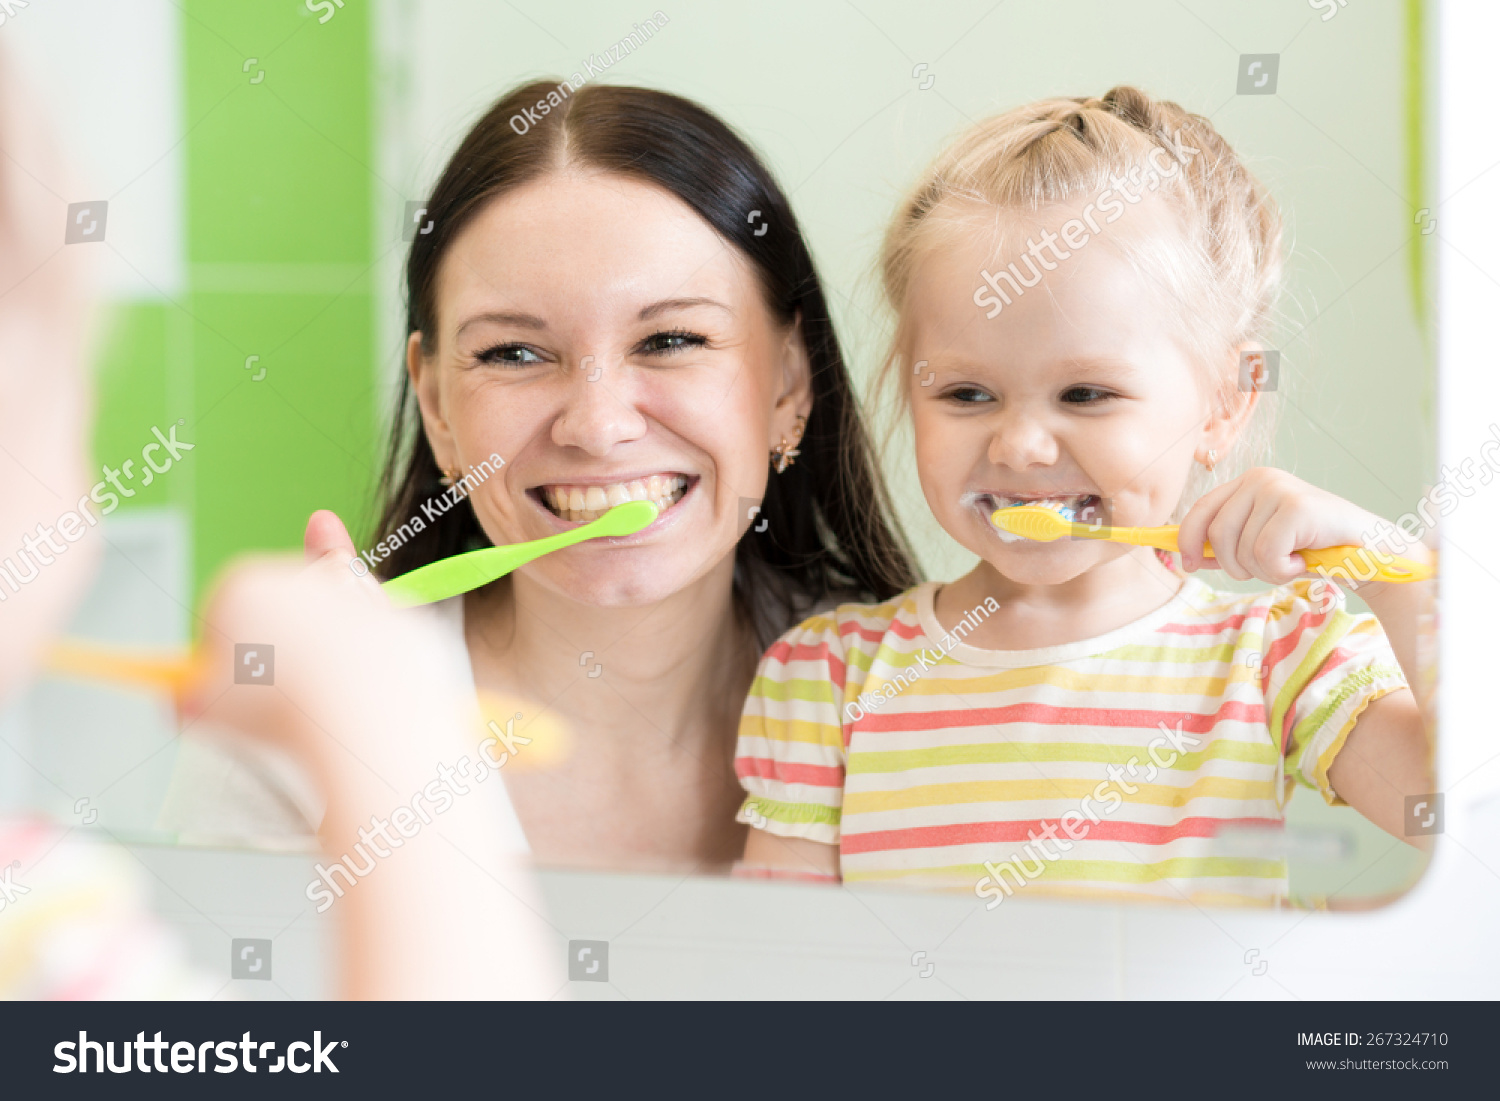 Hygiene Happy mother and child girl brushing teeth together